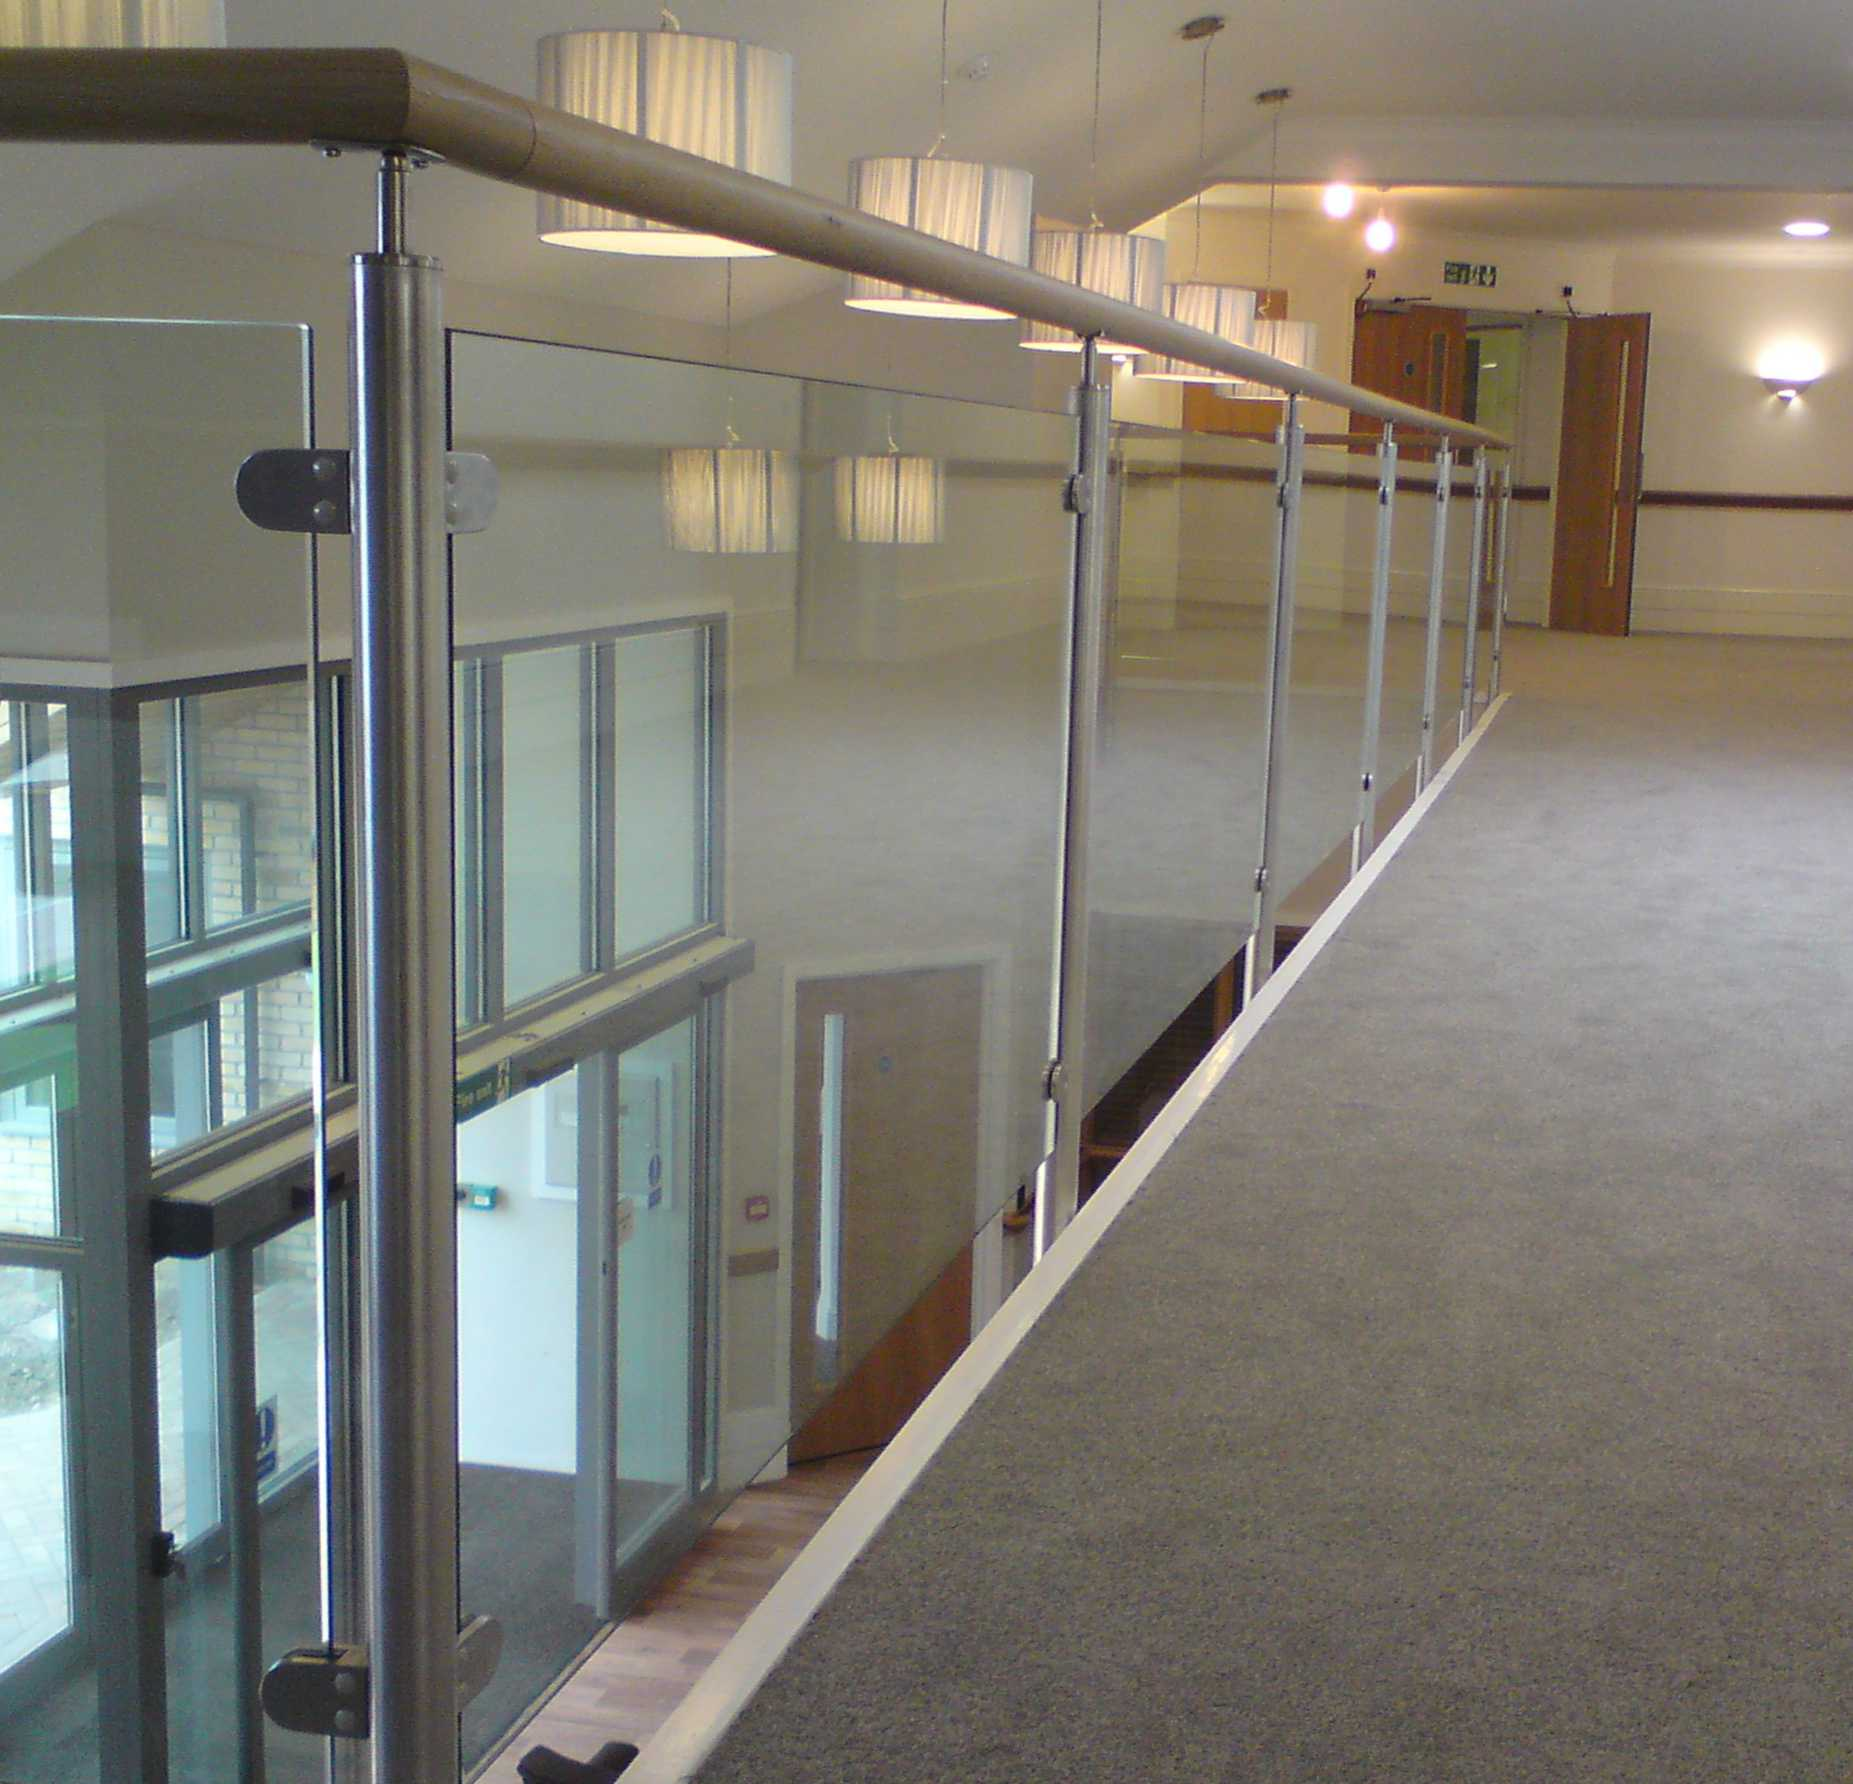 stainless steel handrail with glass balustrade